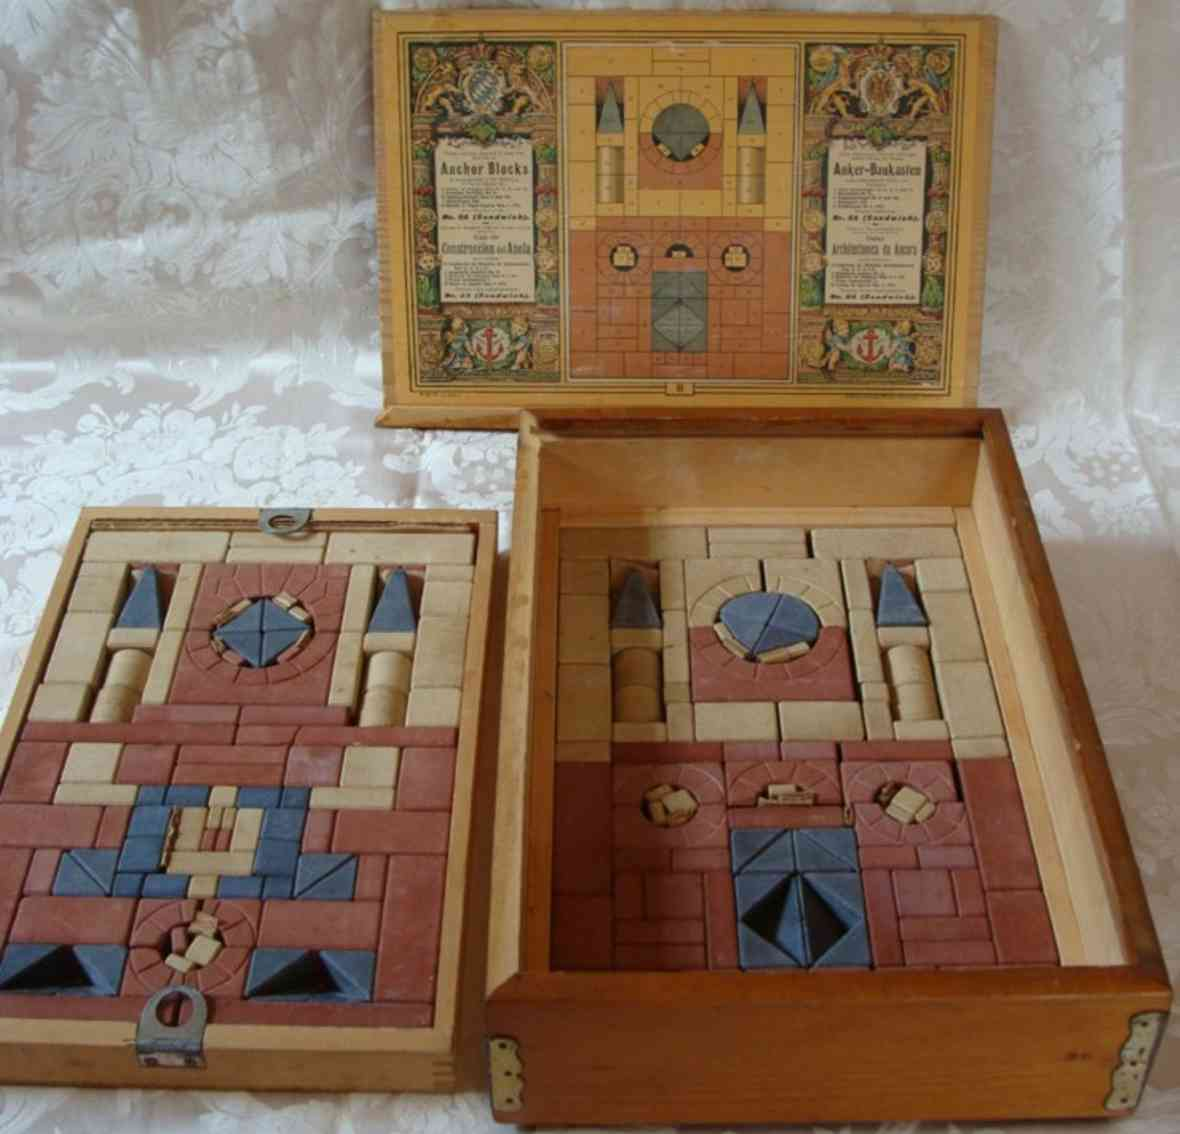 richter f ad 8 wooden toy kit anchor blocks, the blocks are made of quartz sand, chalk and